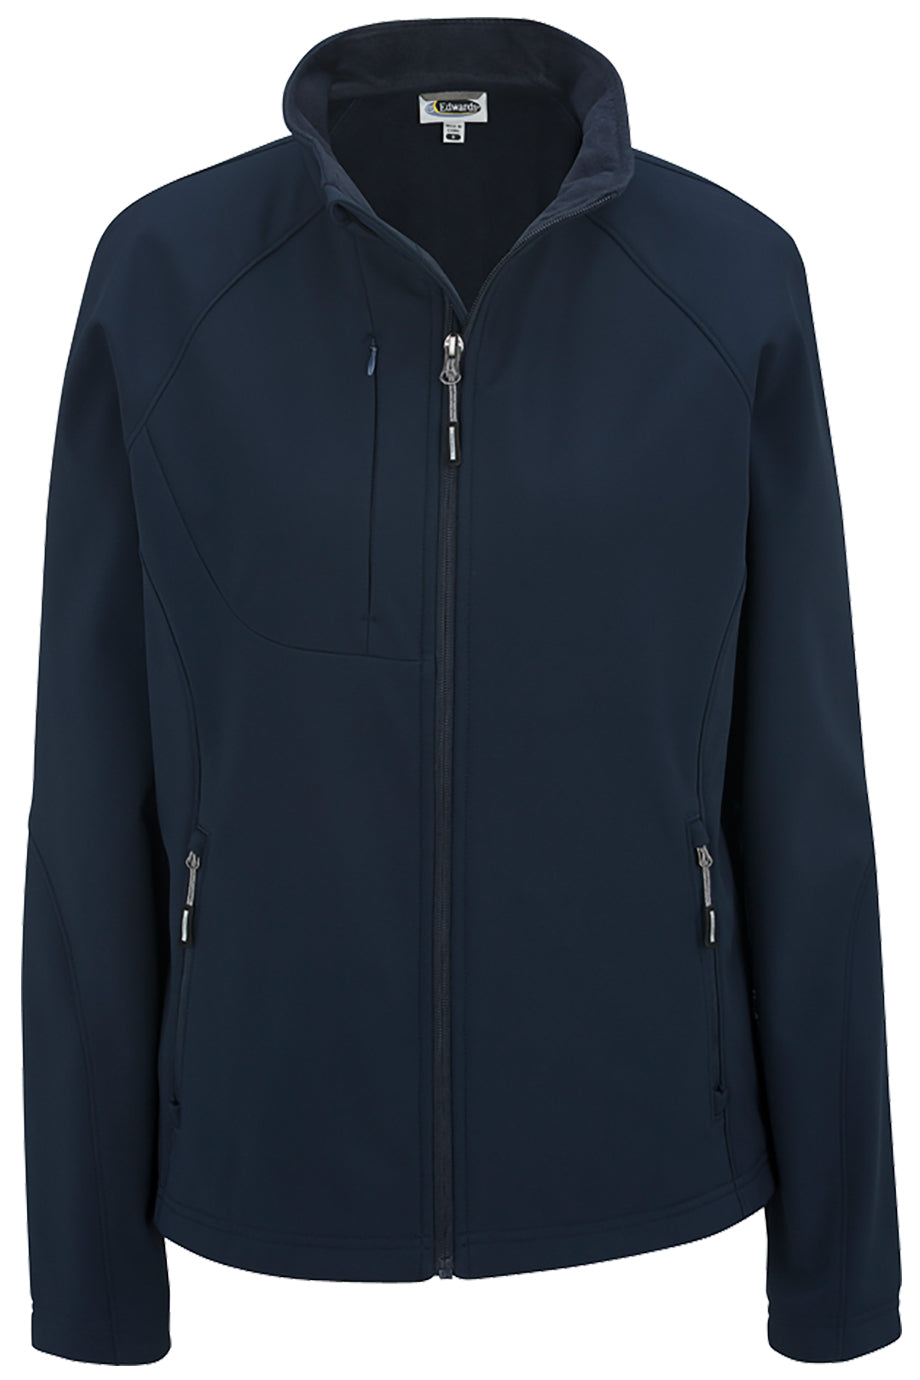 Edwards Ladies Soft Shell Jacket